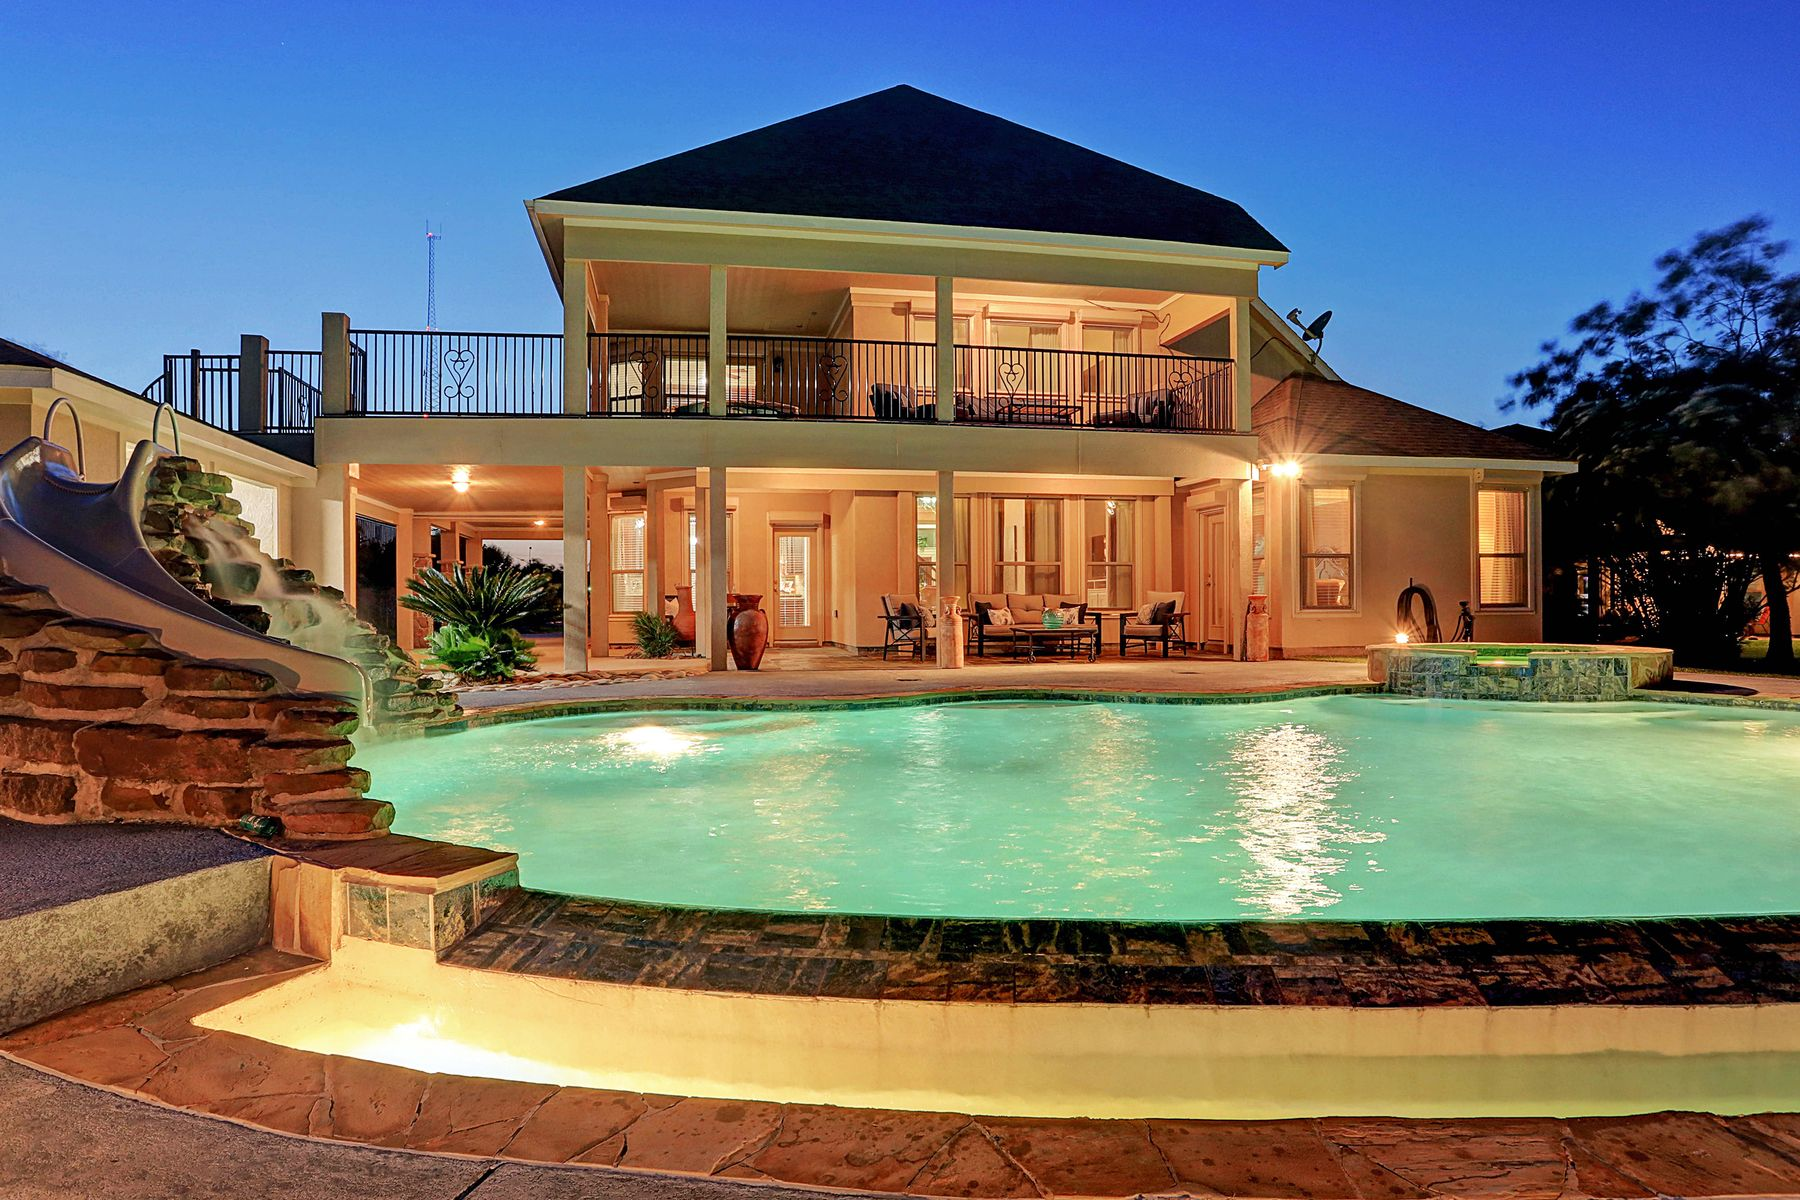 Single Family Homes for Sale at Beach City, Texas 77523 United States